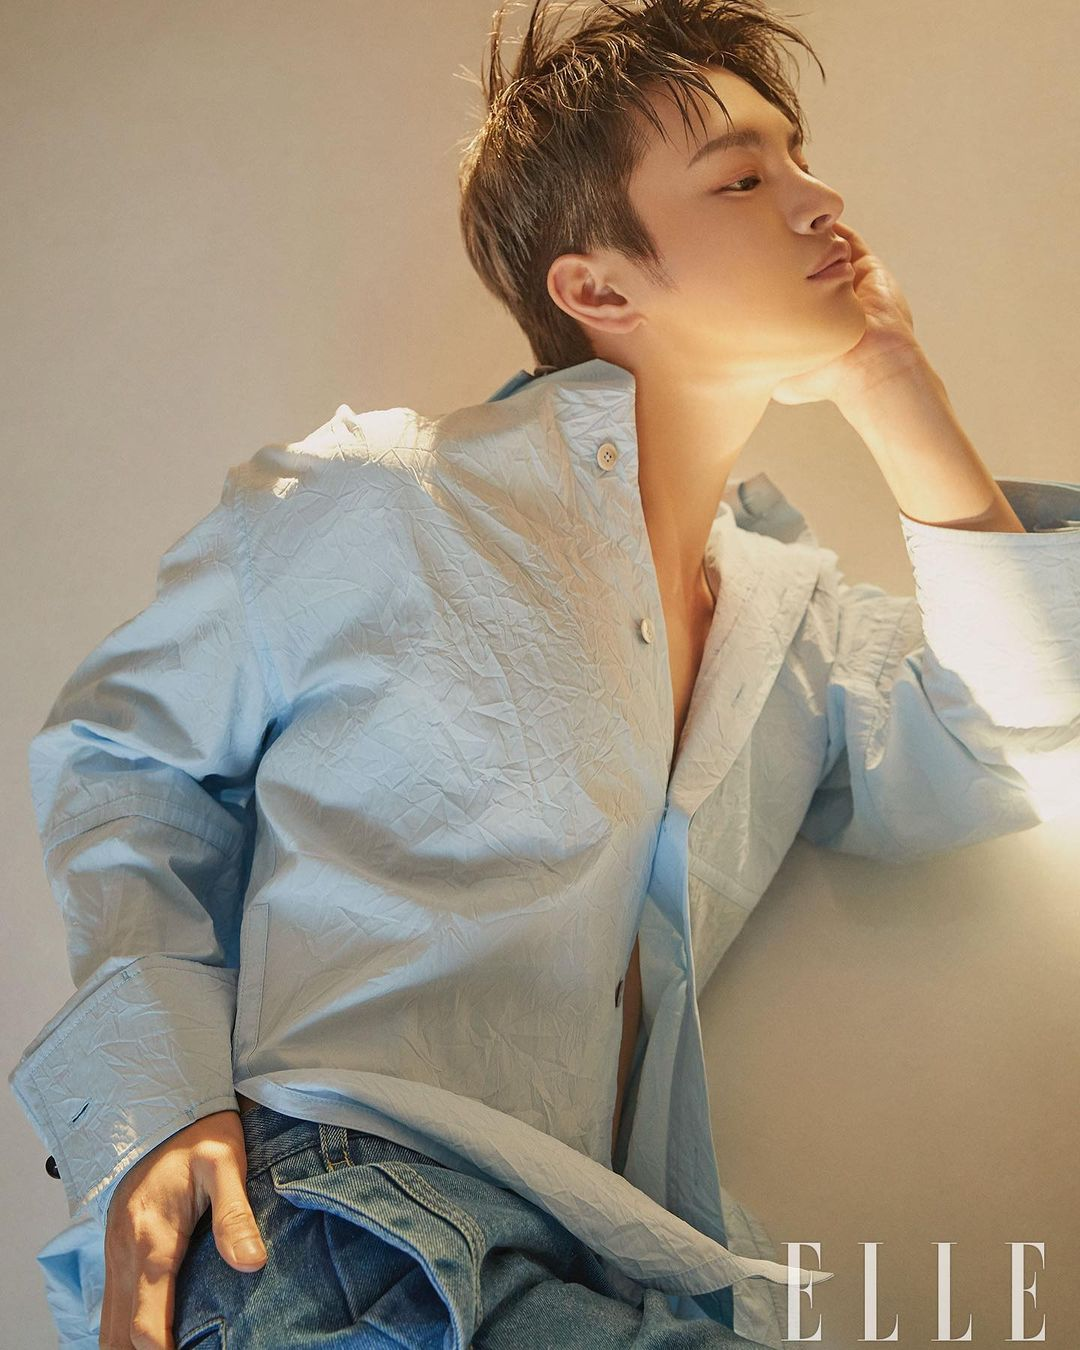 seo-in-guk-gives-glimpses-into-upcoming-drama-doom-at-your-service-in-new-pictorial-for-elle-korea